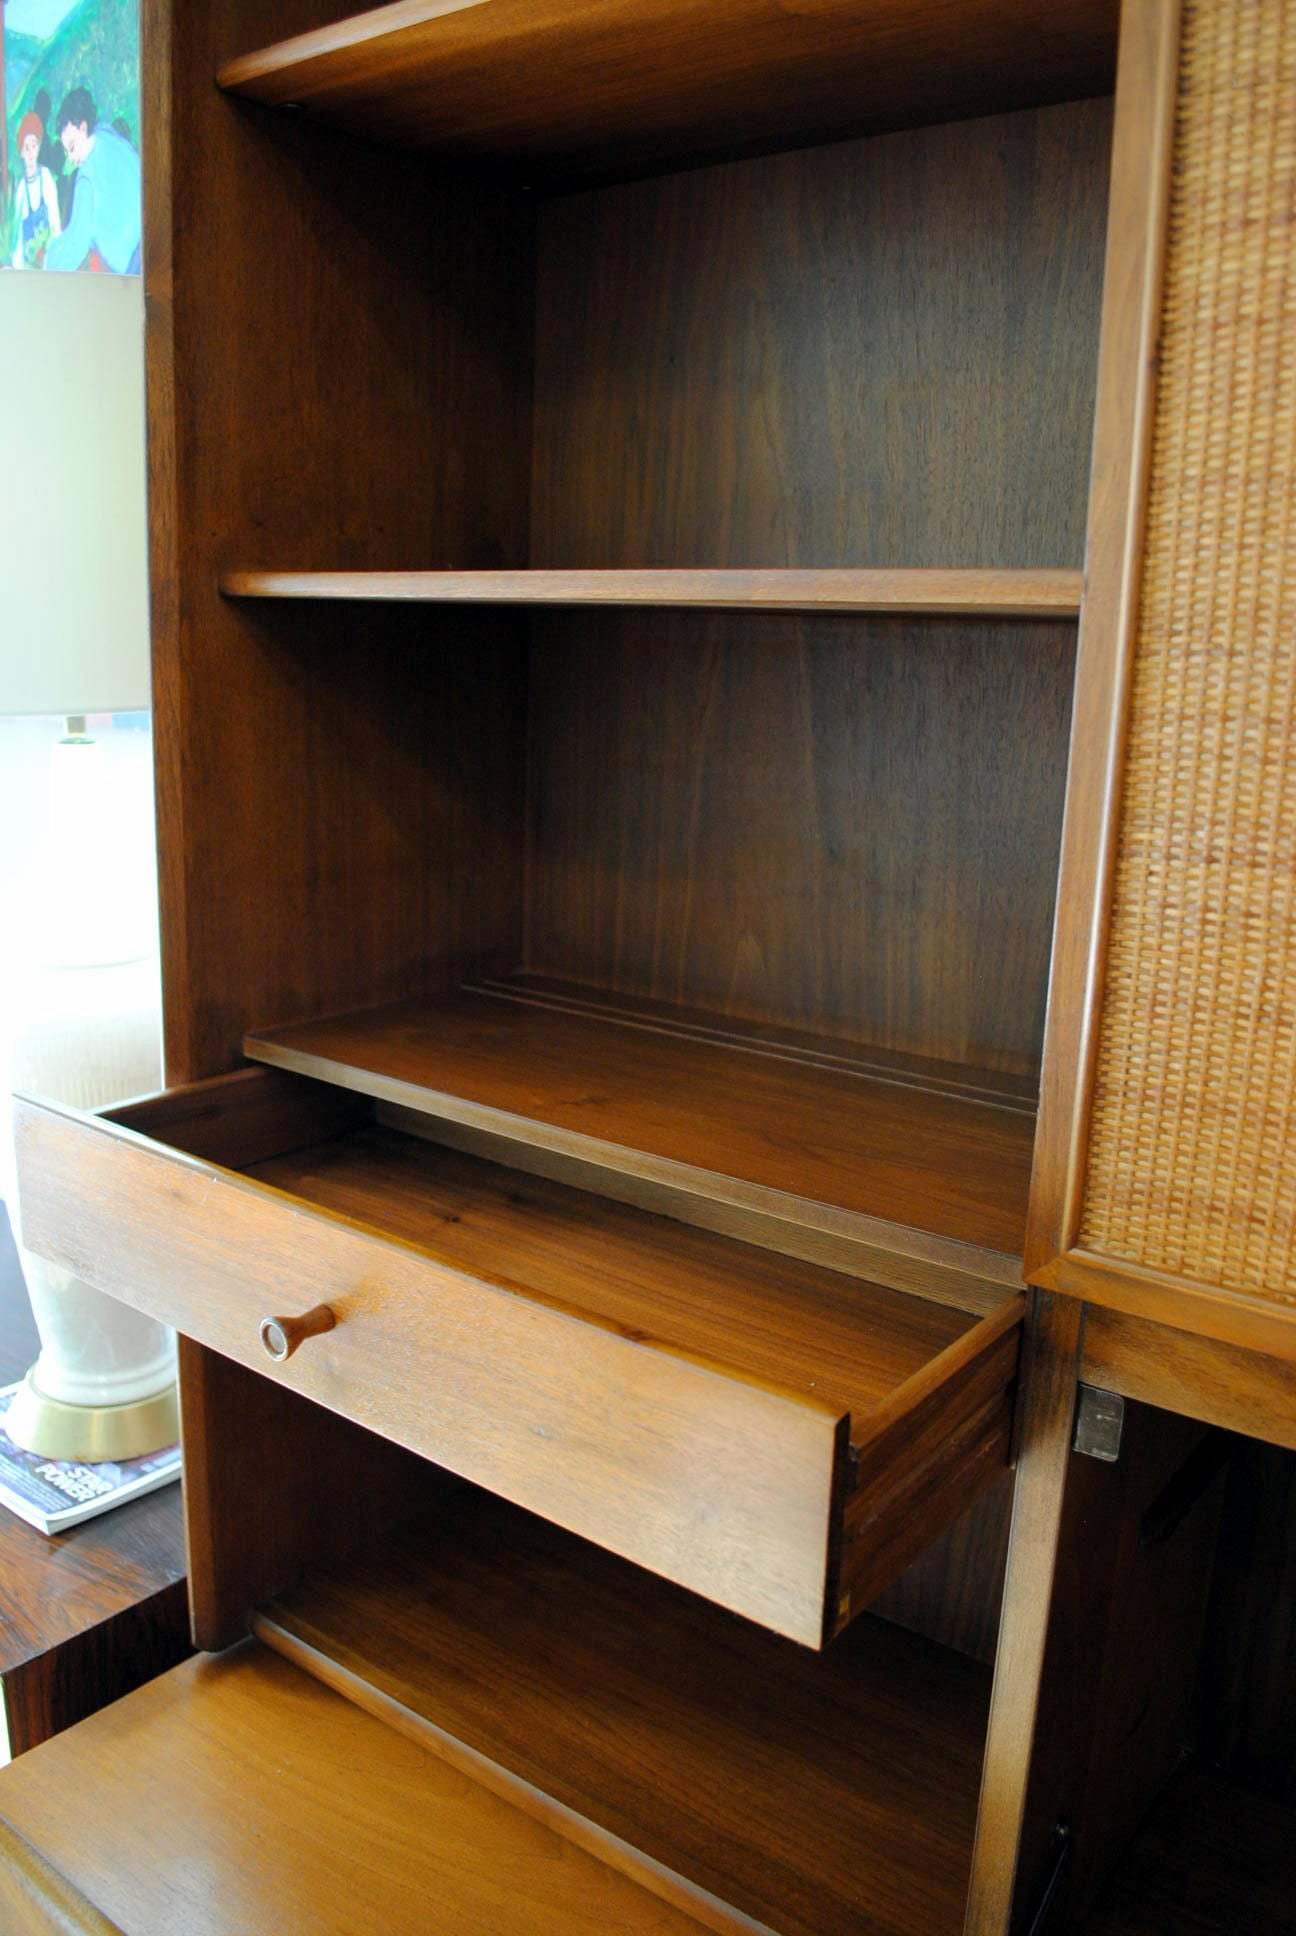 on than sideboards for images cabinet wallpaper lovely full hutch best bookshelves ideas pinterest awesome sale hutches of bar hd recommendations contemporary sets